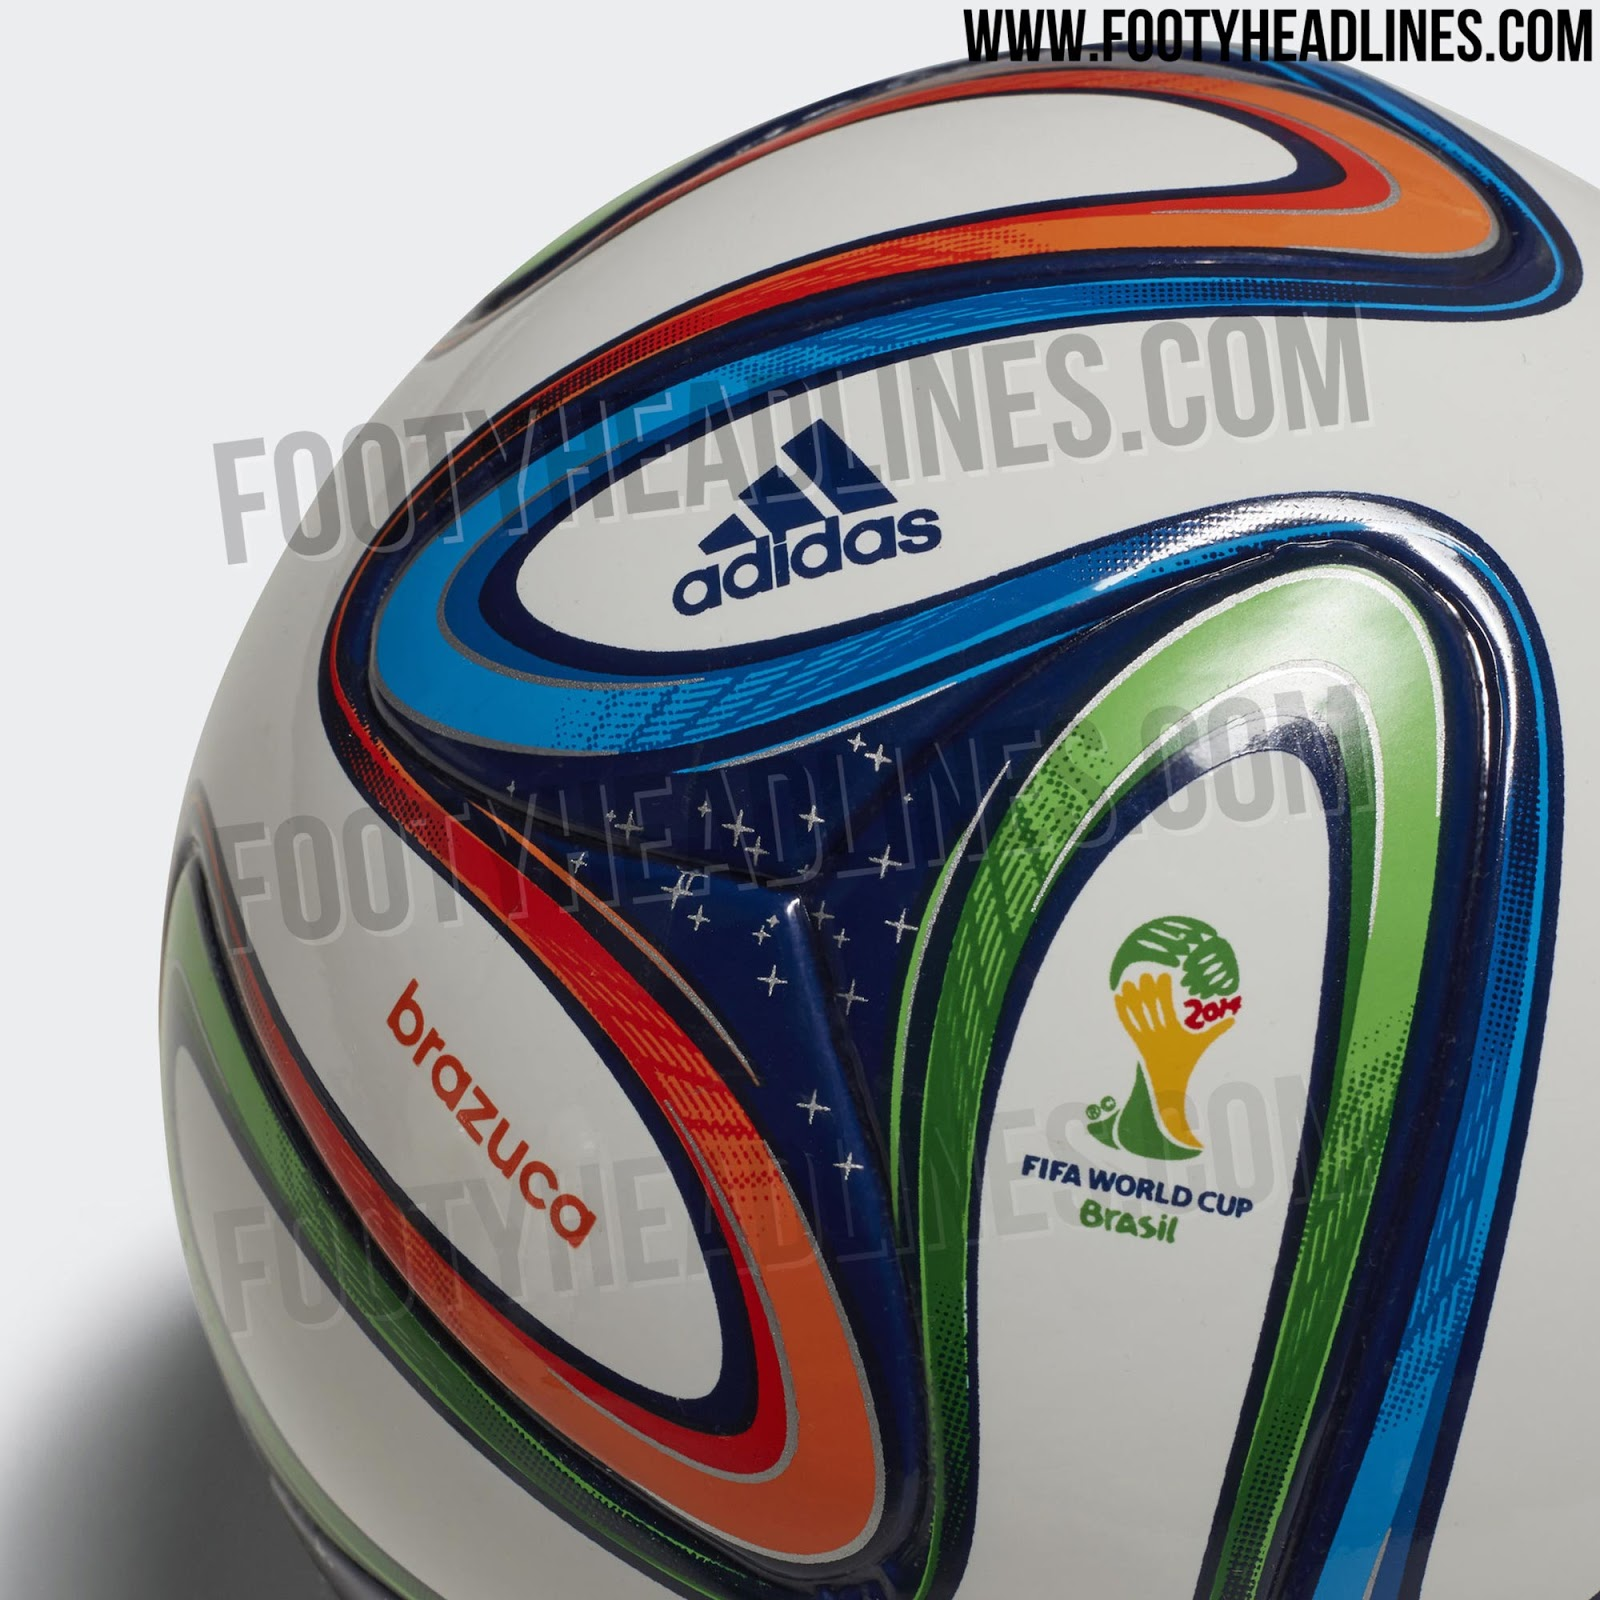 competitive price 426b5 aa93a In total, the special Adidas Mini Ball package contains a mini version of  all 13 World Cup match balls that Adidas has released over the last 48  years.